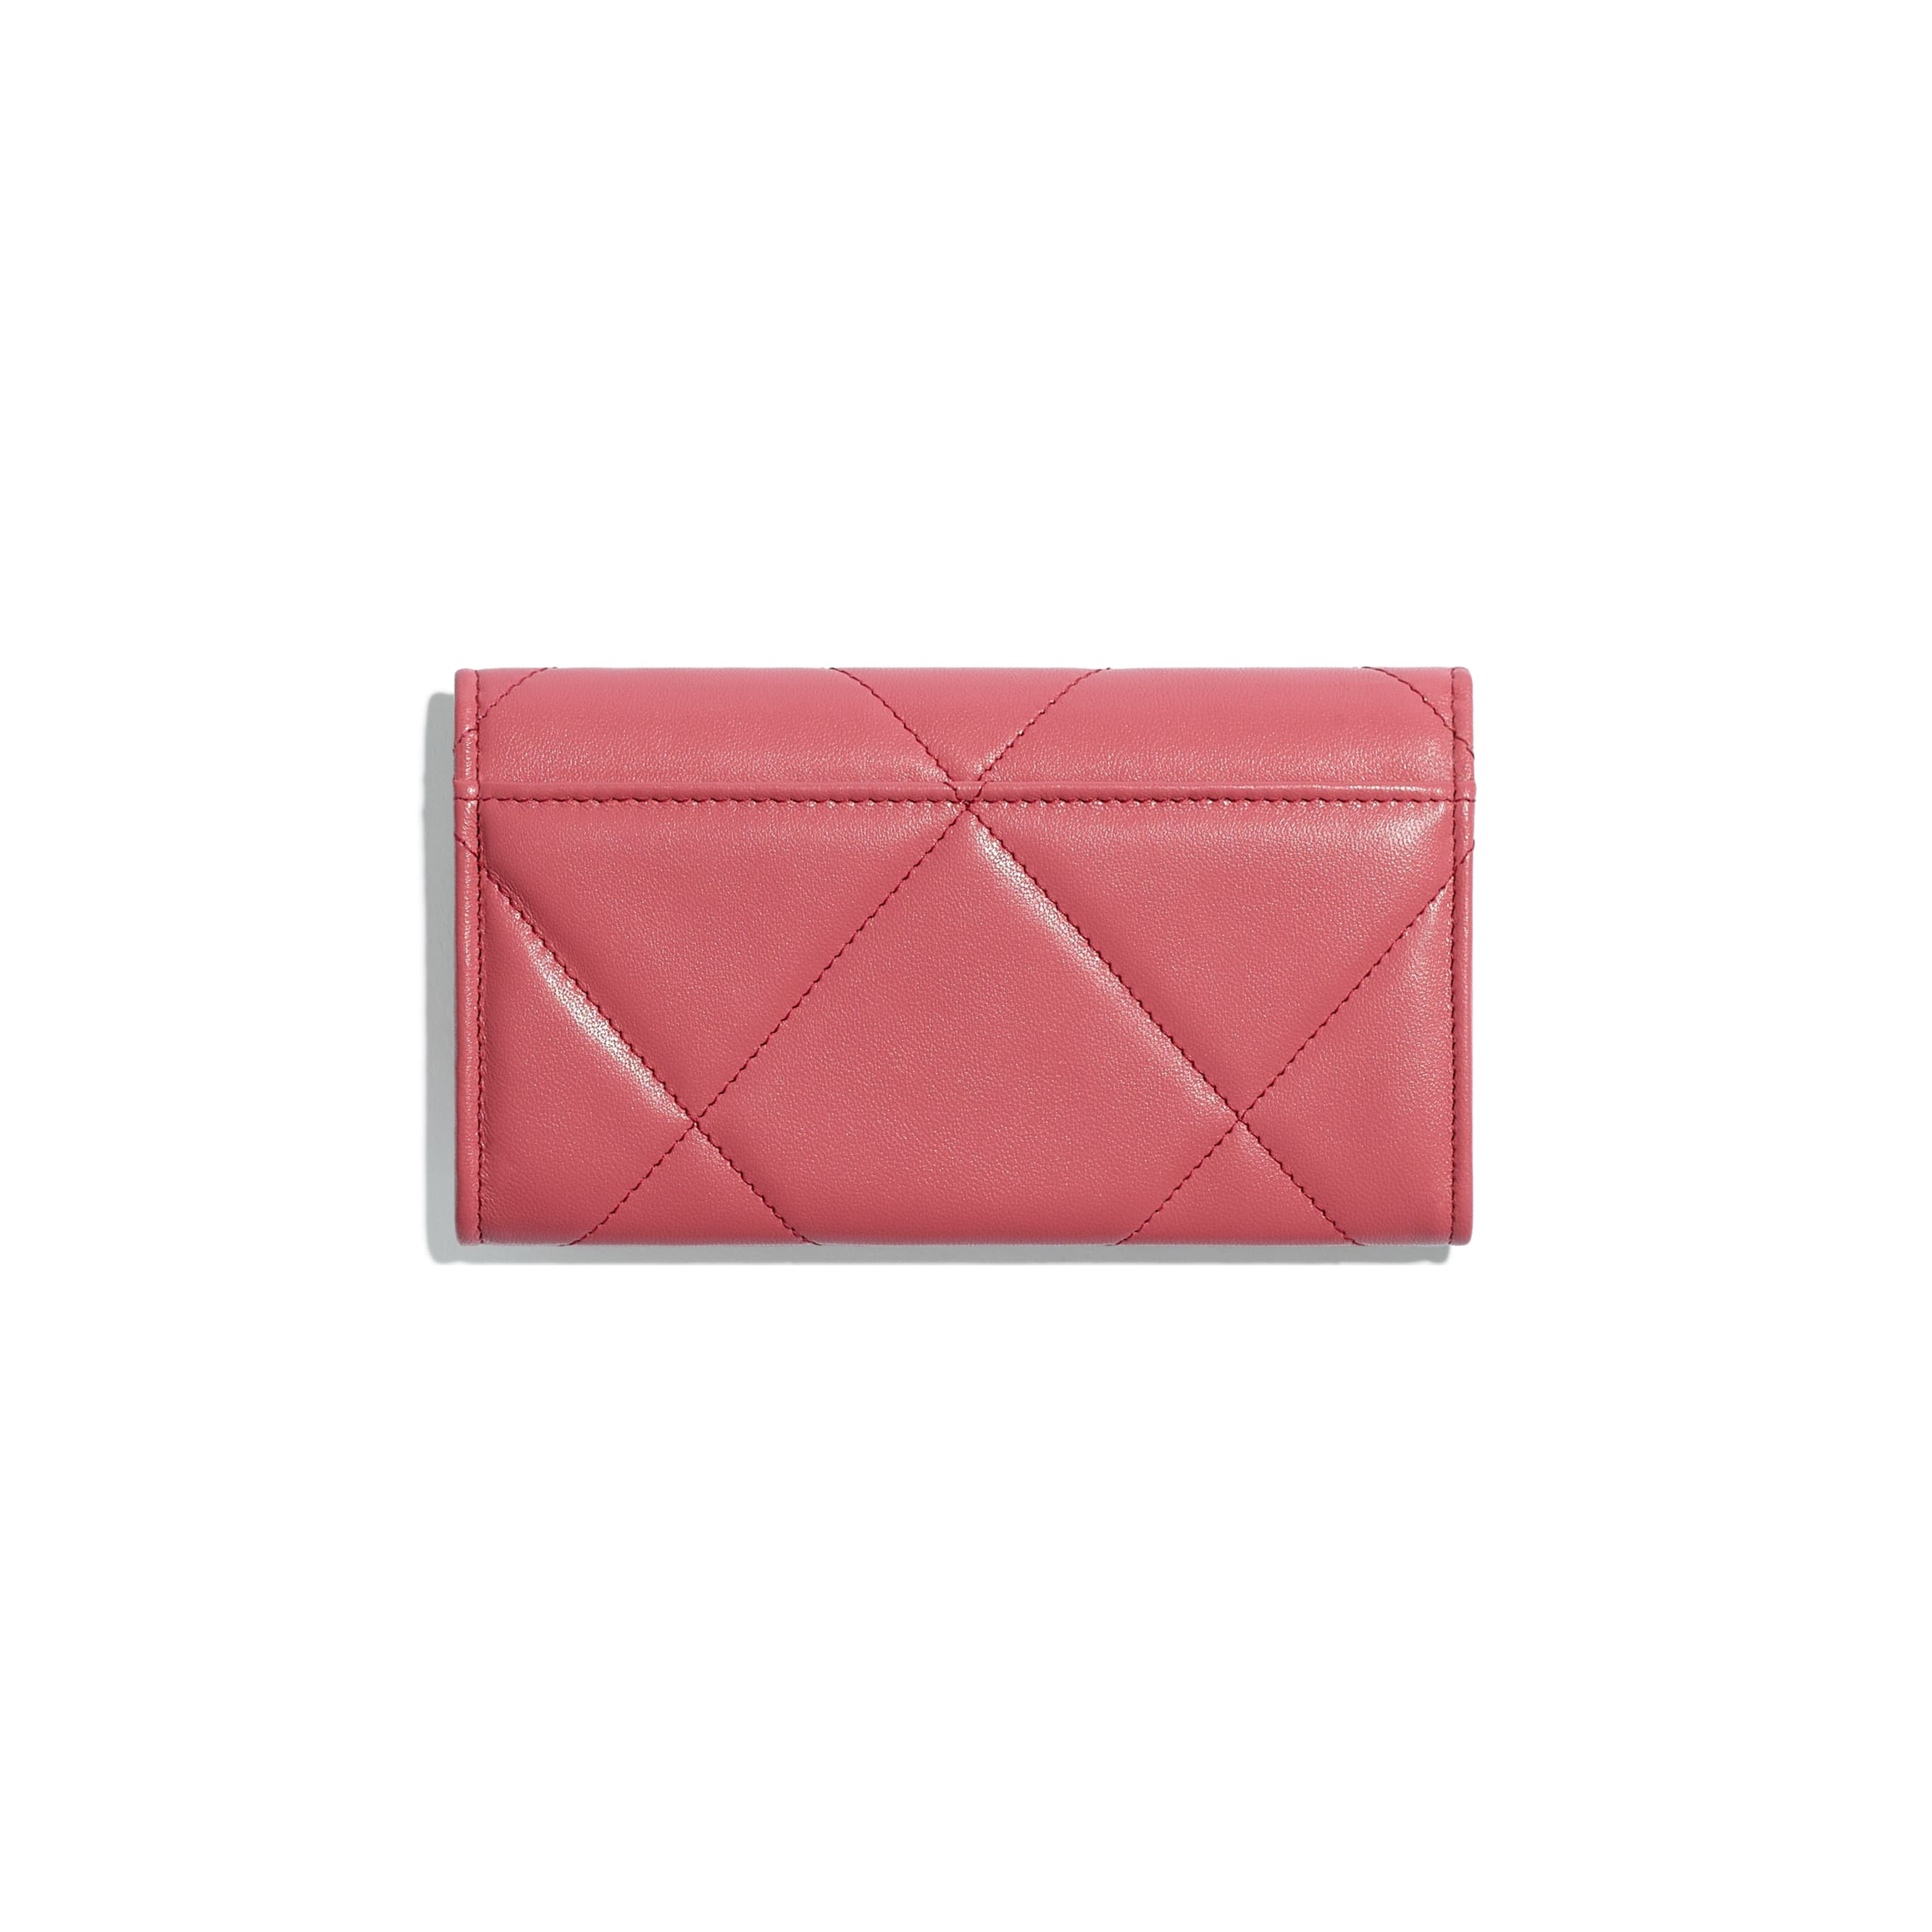 CHANEL 19 Flap Wallet - Pink - Lambskin, Gold-Tone, Silver-Tone & Ruthenium-Finish Metal - Alternative view - see standard sized version